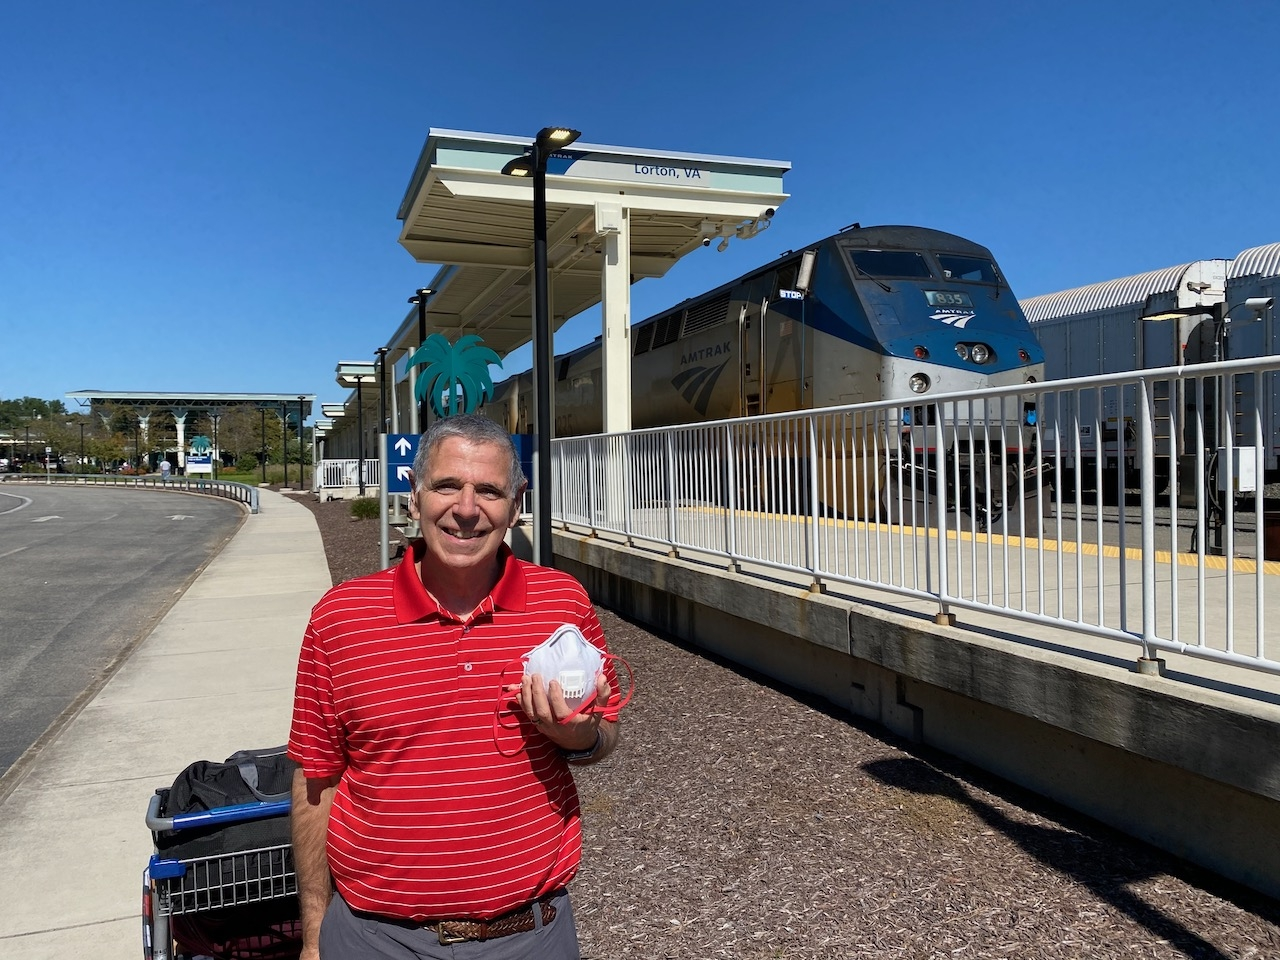 Amtrak Auto Train – Southbound to Florida!